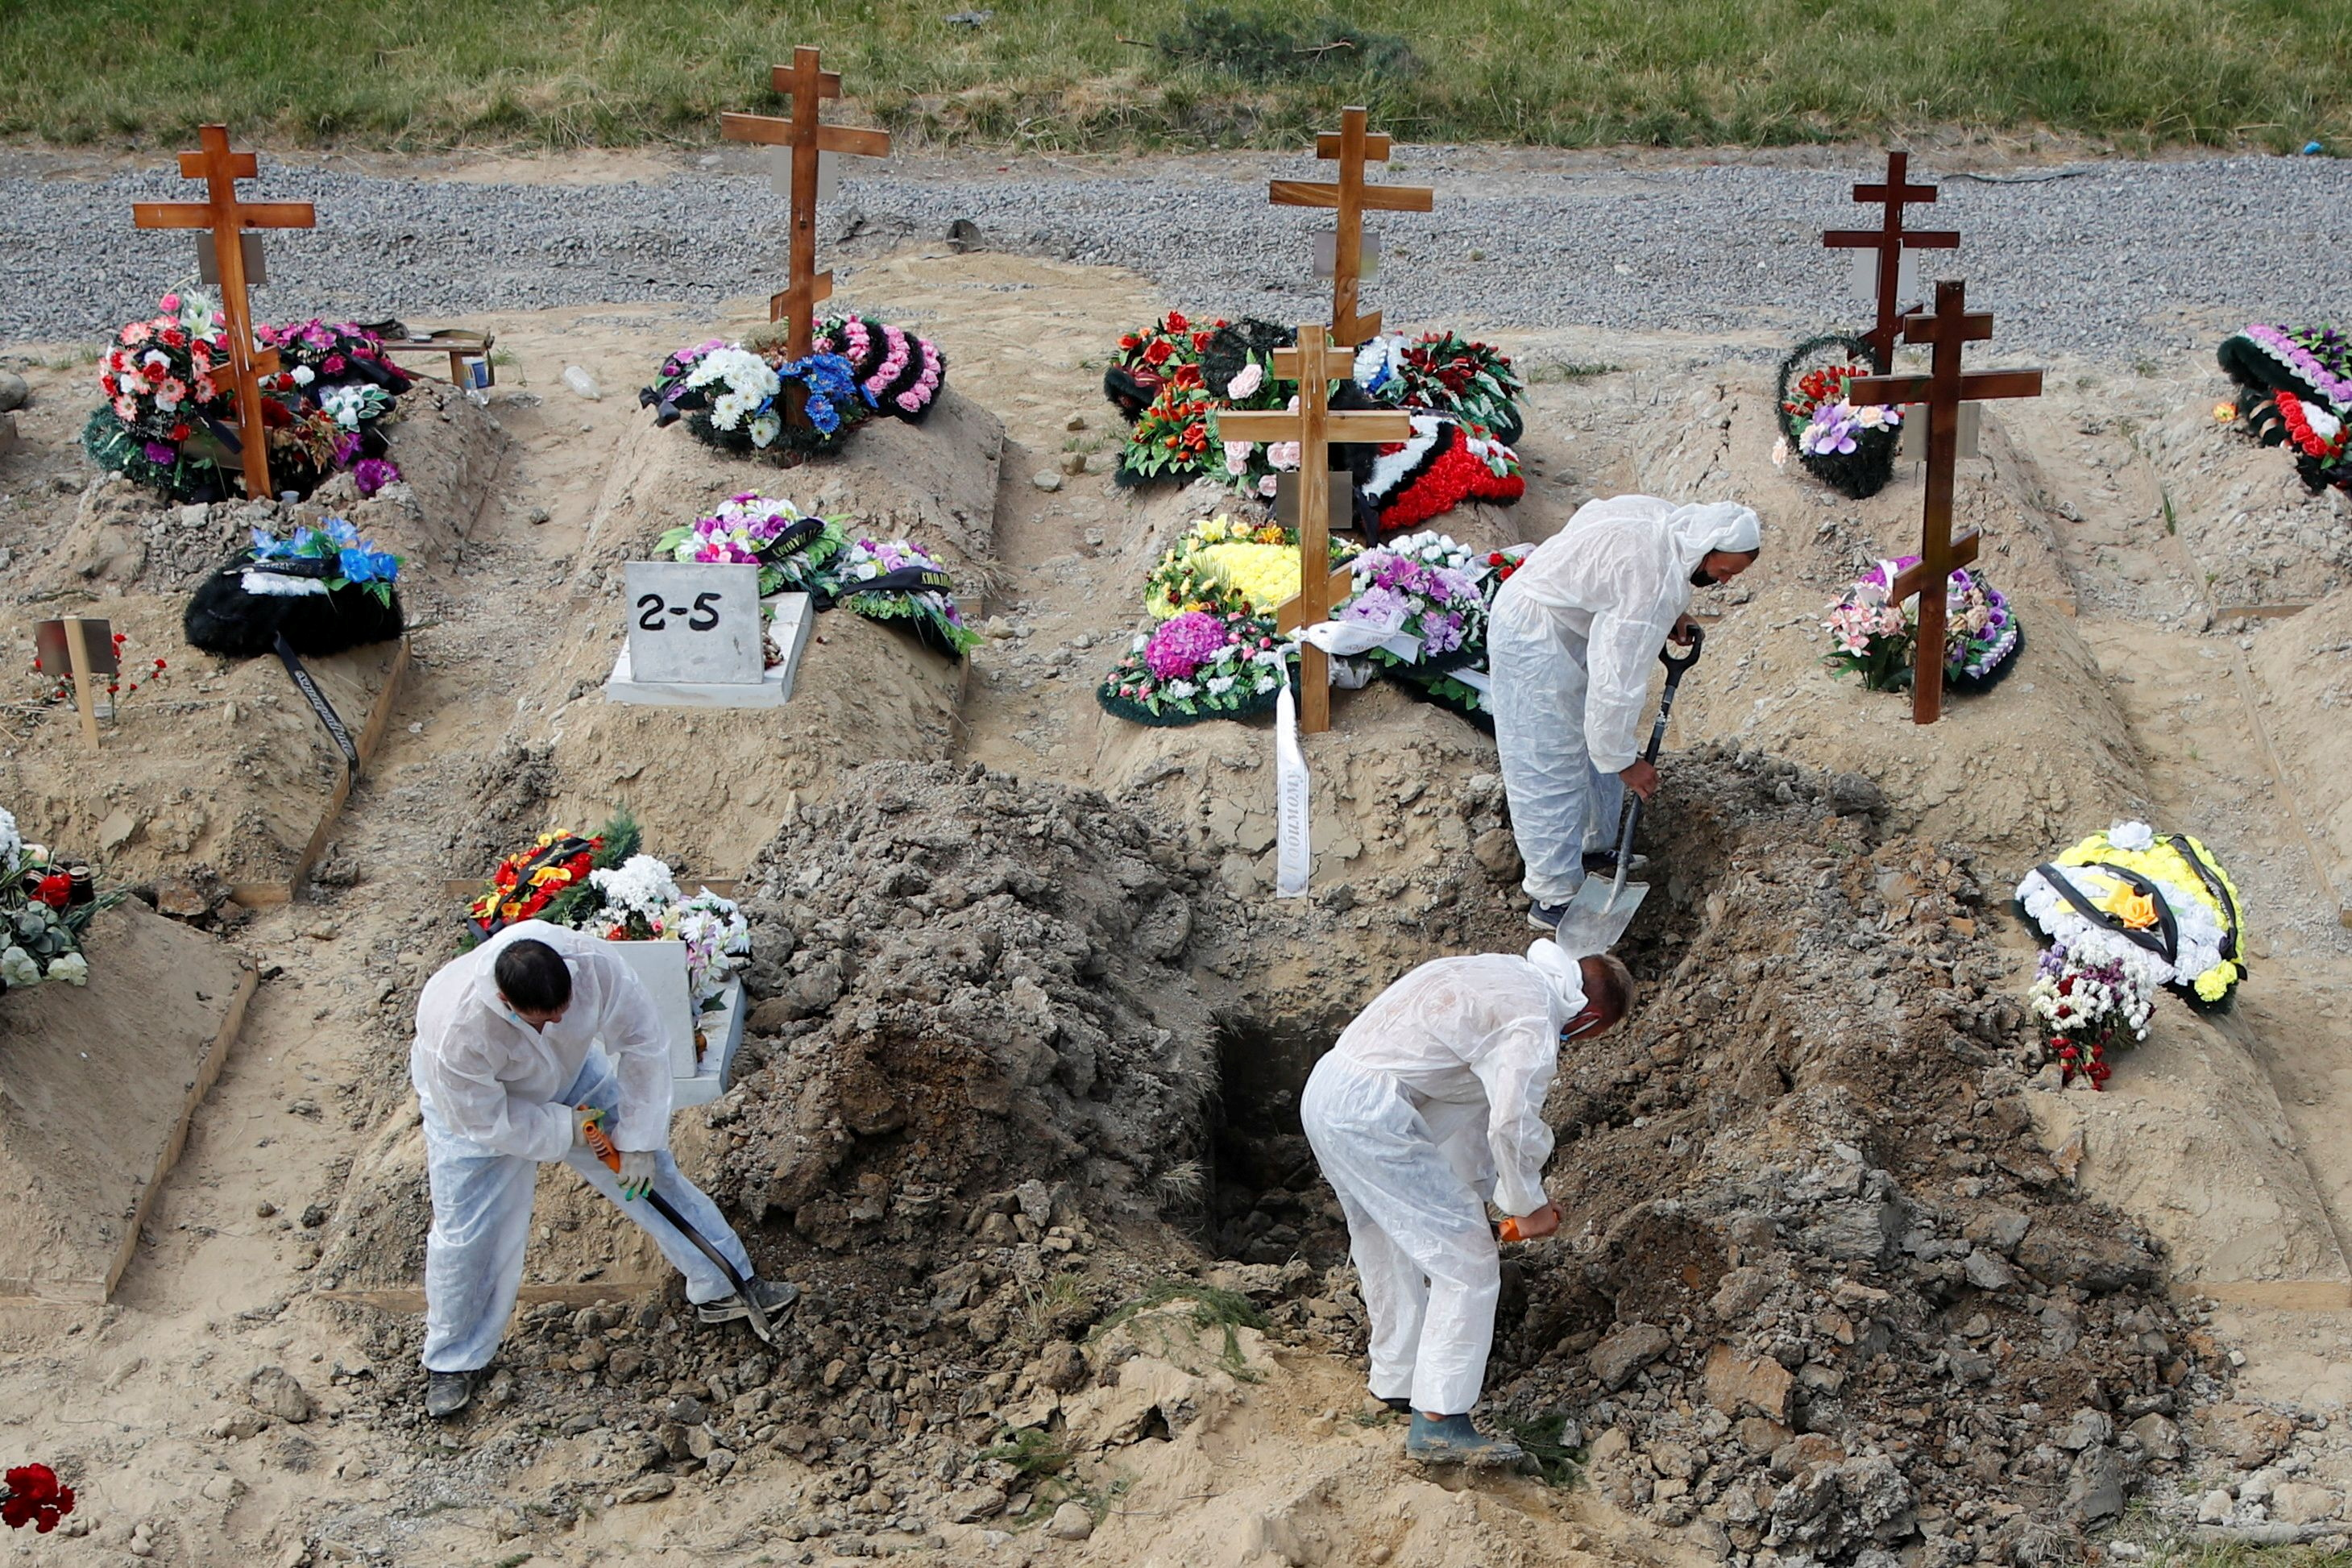 Grave diggers wearing personal protective equipment (PPE) as a preventive measure against the coronavirus disease (COVID-19) bury a person at a graveyard on the outskirts of Saint Petersburg, Russia June 25, 2021. REUTERS/Anton Vaganov